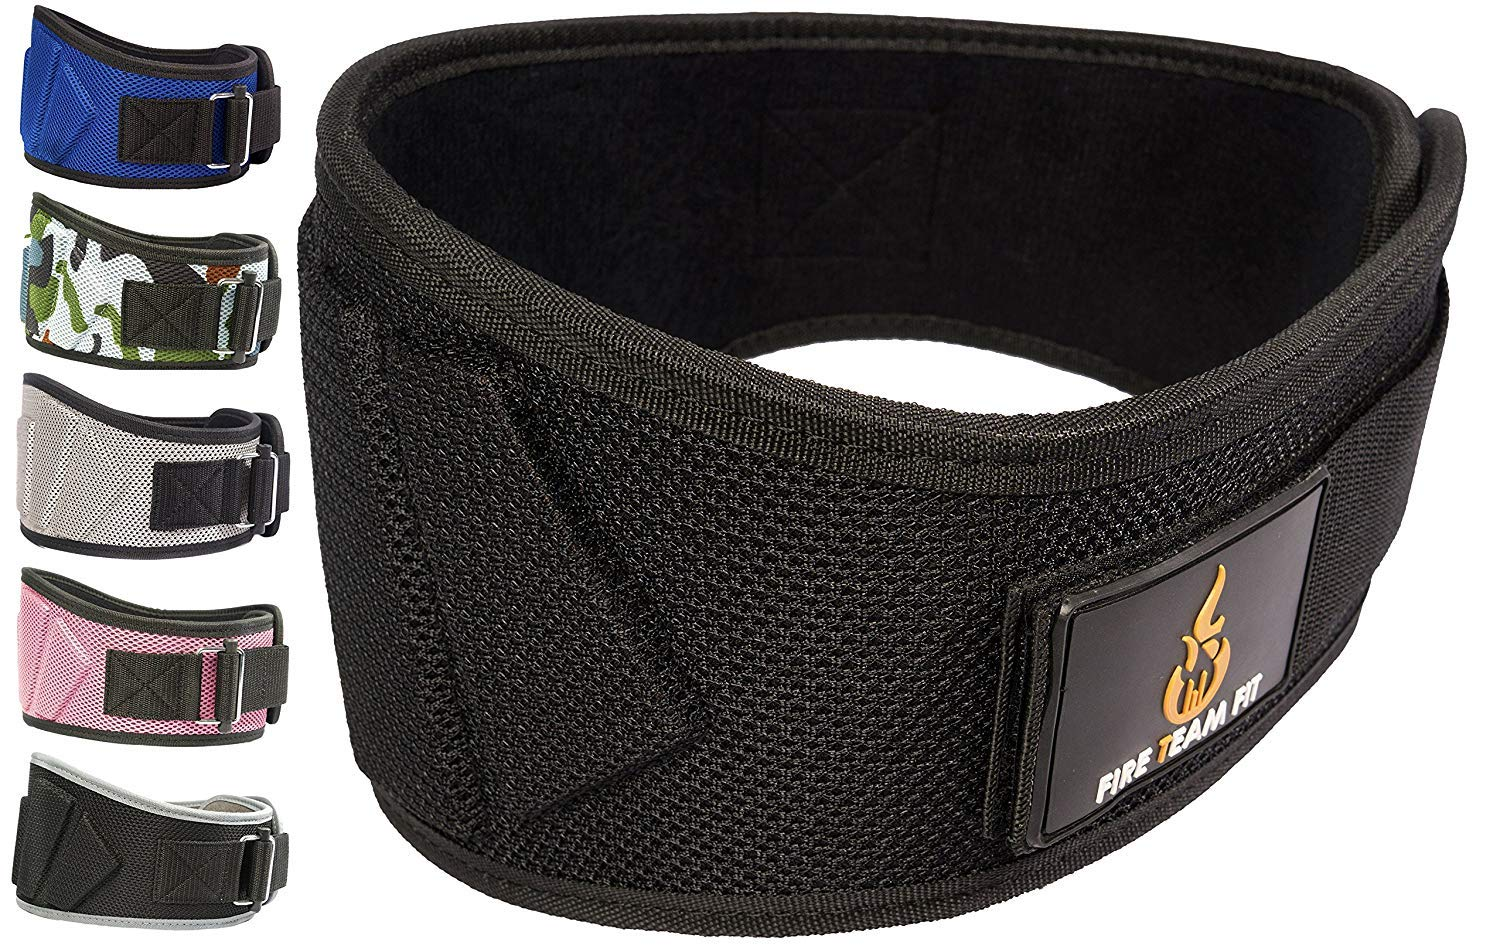 Fire Team Fit Power-lifting Belt.